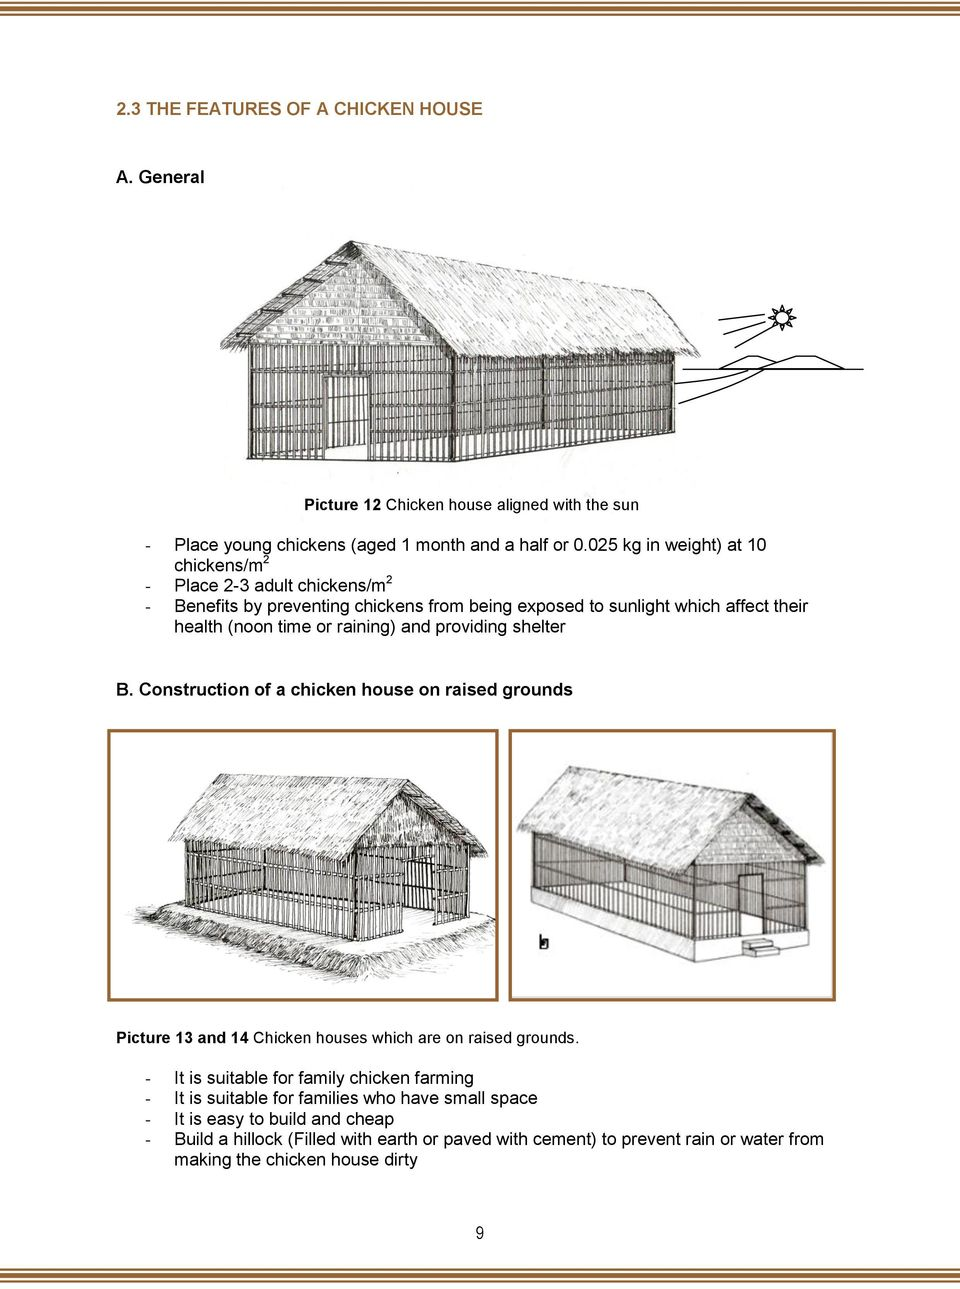 raining) and providing shelter B. Construction of a chicken house on raised grounds Picture 13 and 14 Chicken houses which are on raised grounds.